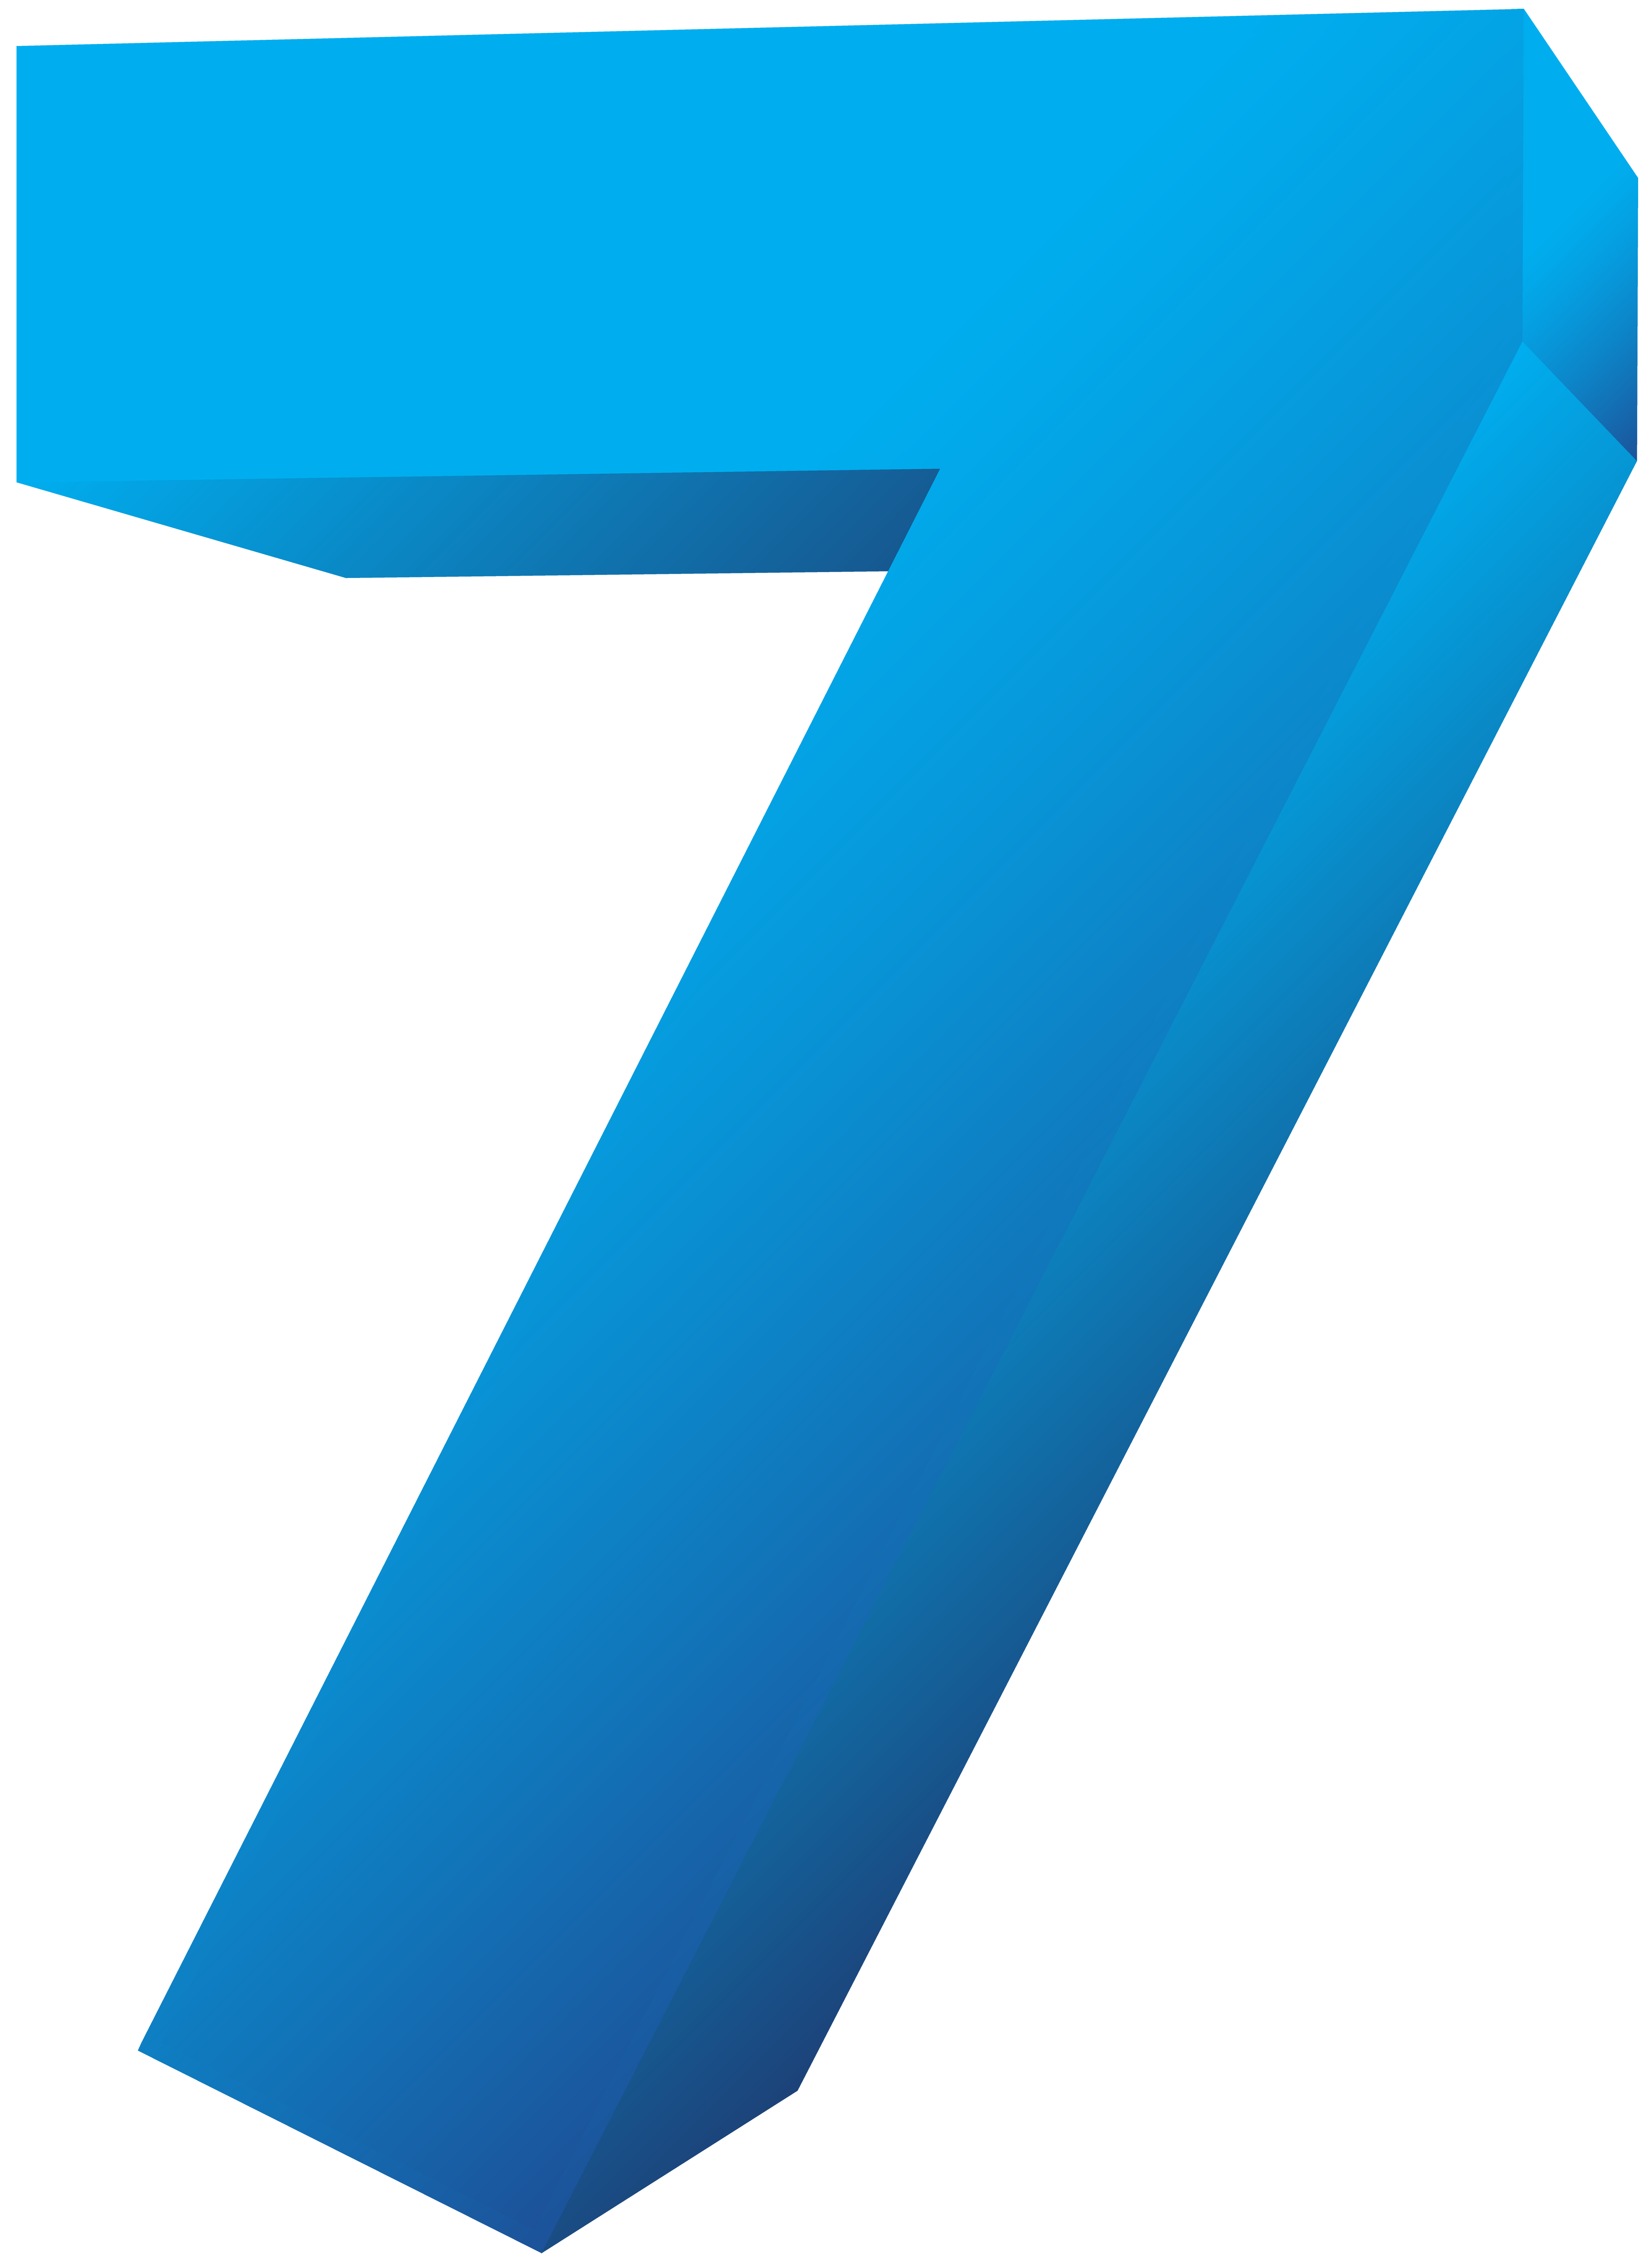 Number seven transparent png. Clipart numbers blue